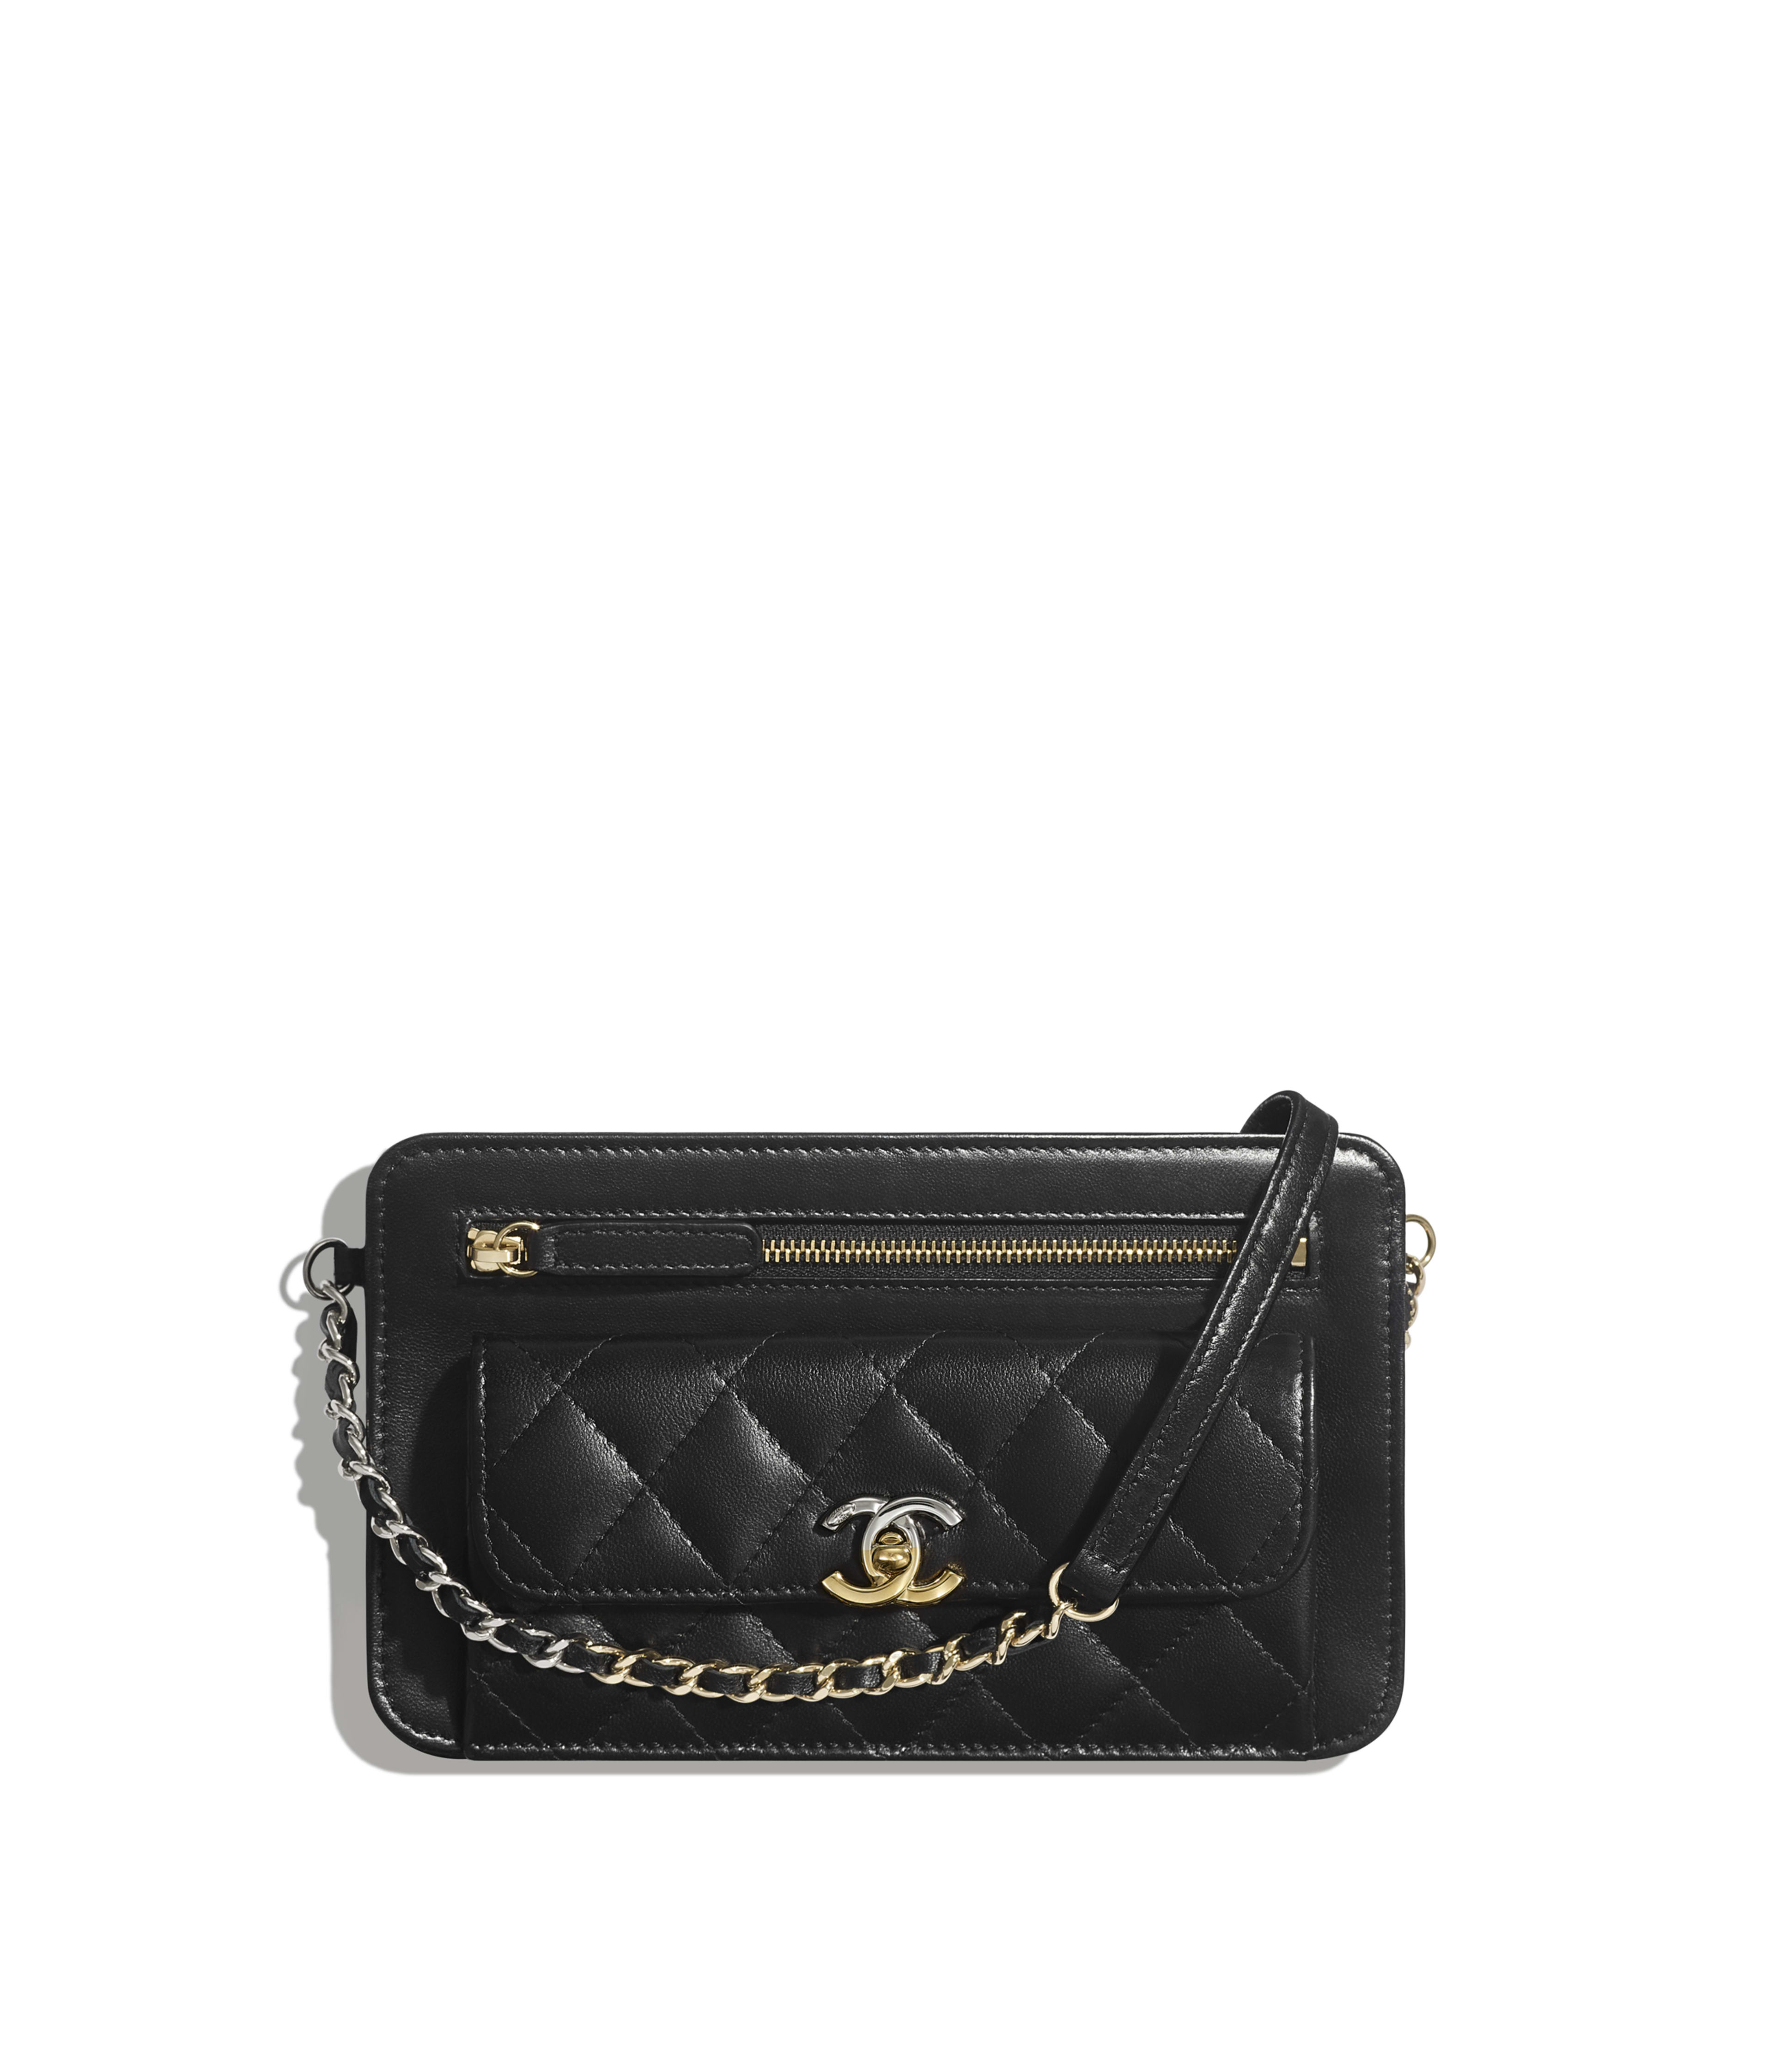 5c01b3fb12 Clutches with Chain - Small leather goods